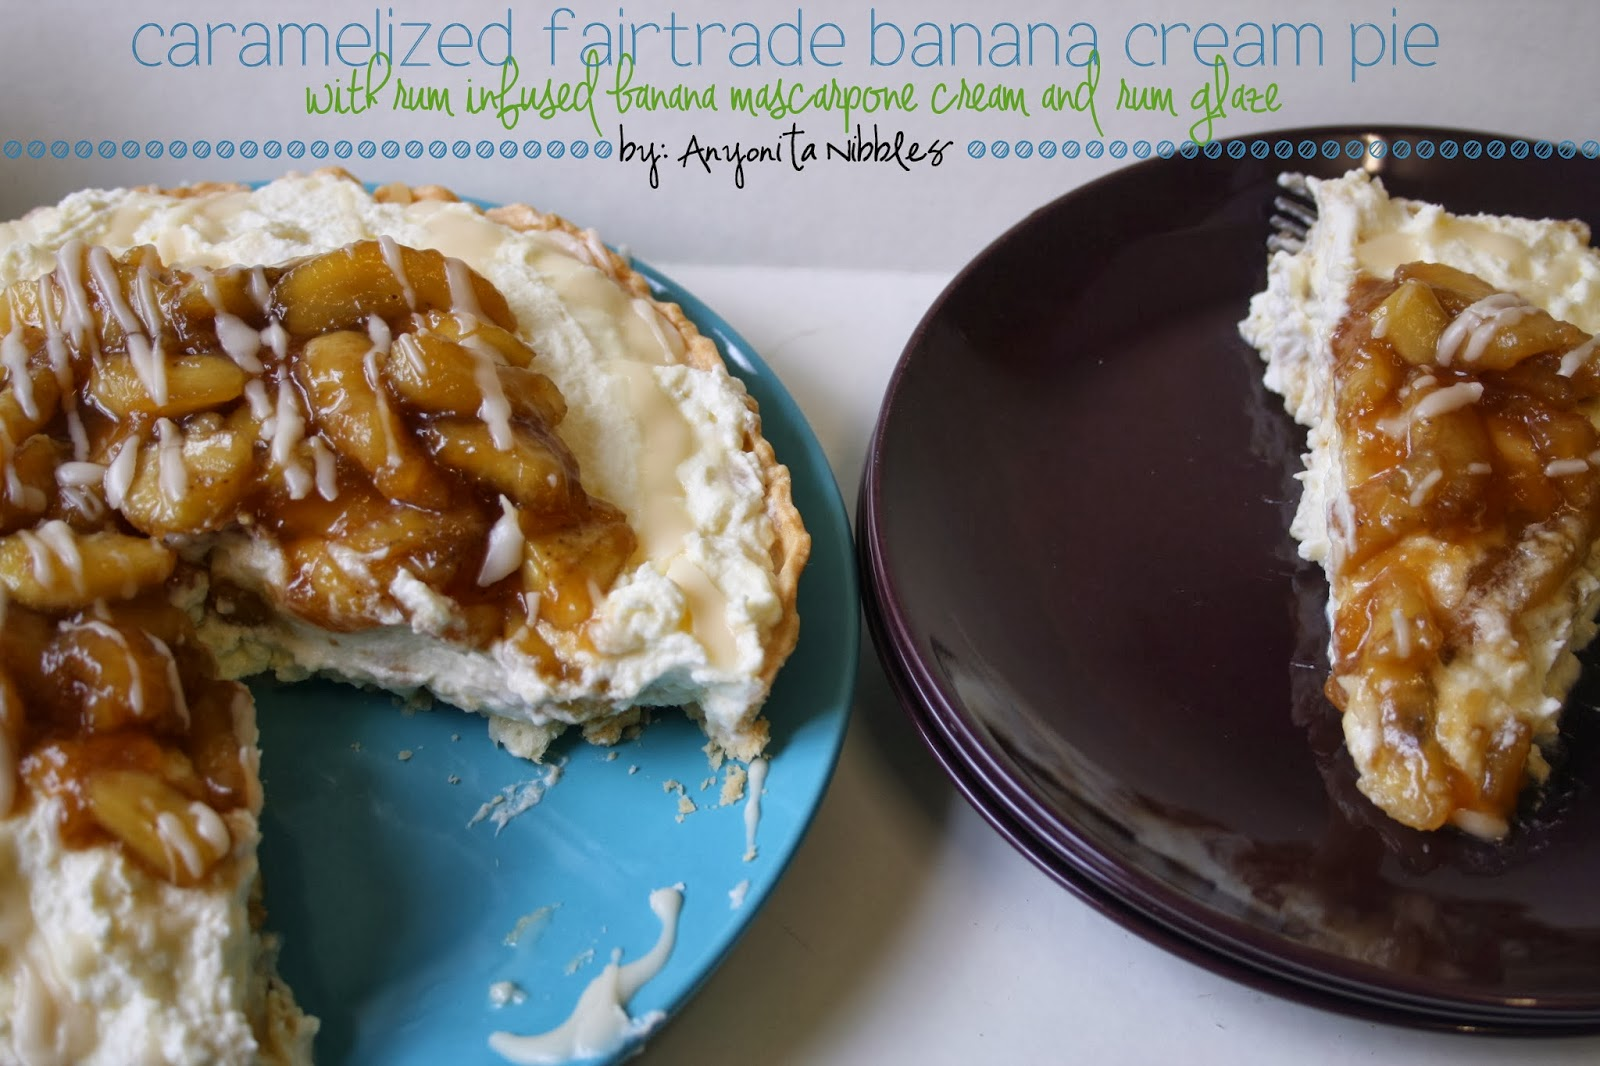 Caramelized Sainsburys Fairtrade Banana Cream Pie from www.anyonita-nibbles.co.uk